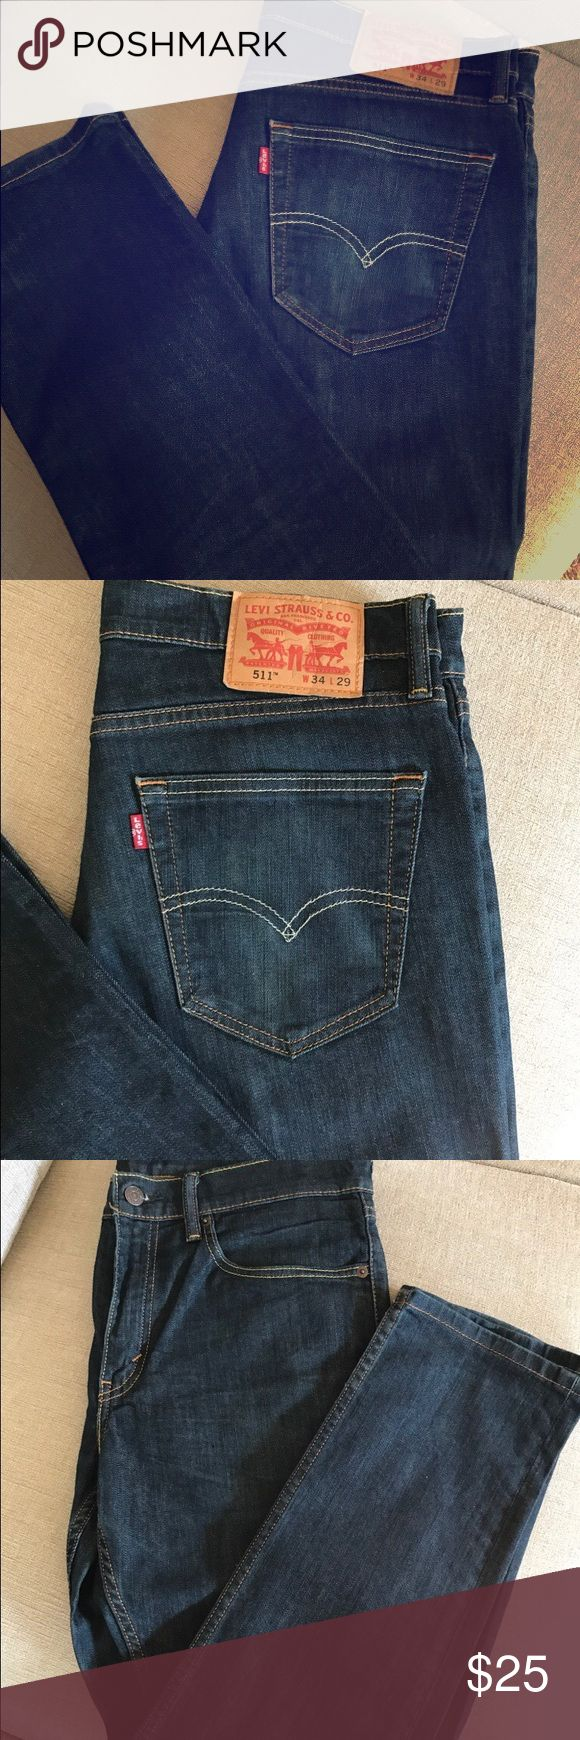 Levi Strauss jeans 511 Levi jeans 511 ~~ W34 L29 ~~ very well taken care of Levi's Jeans Slim Straight